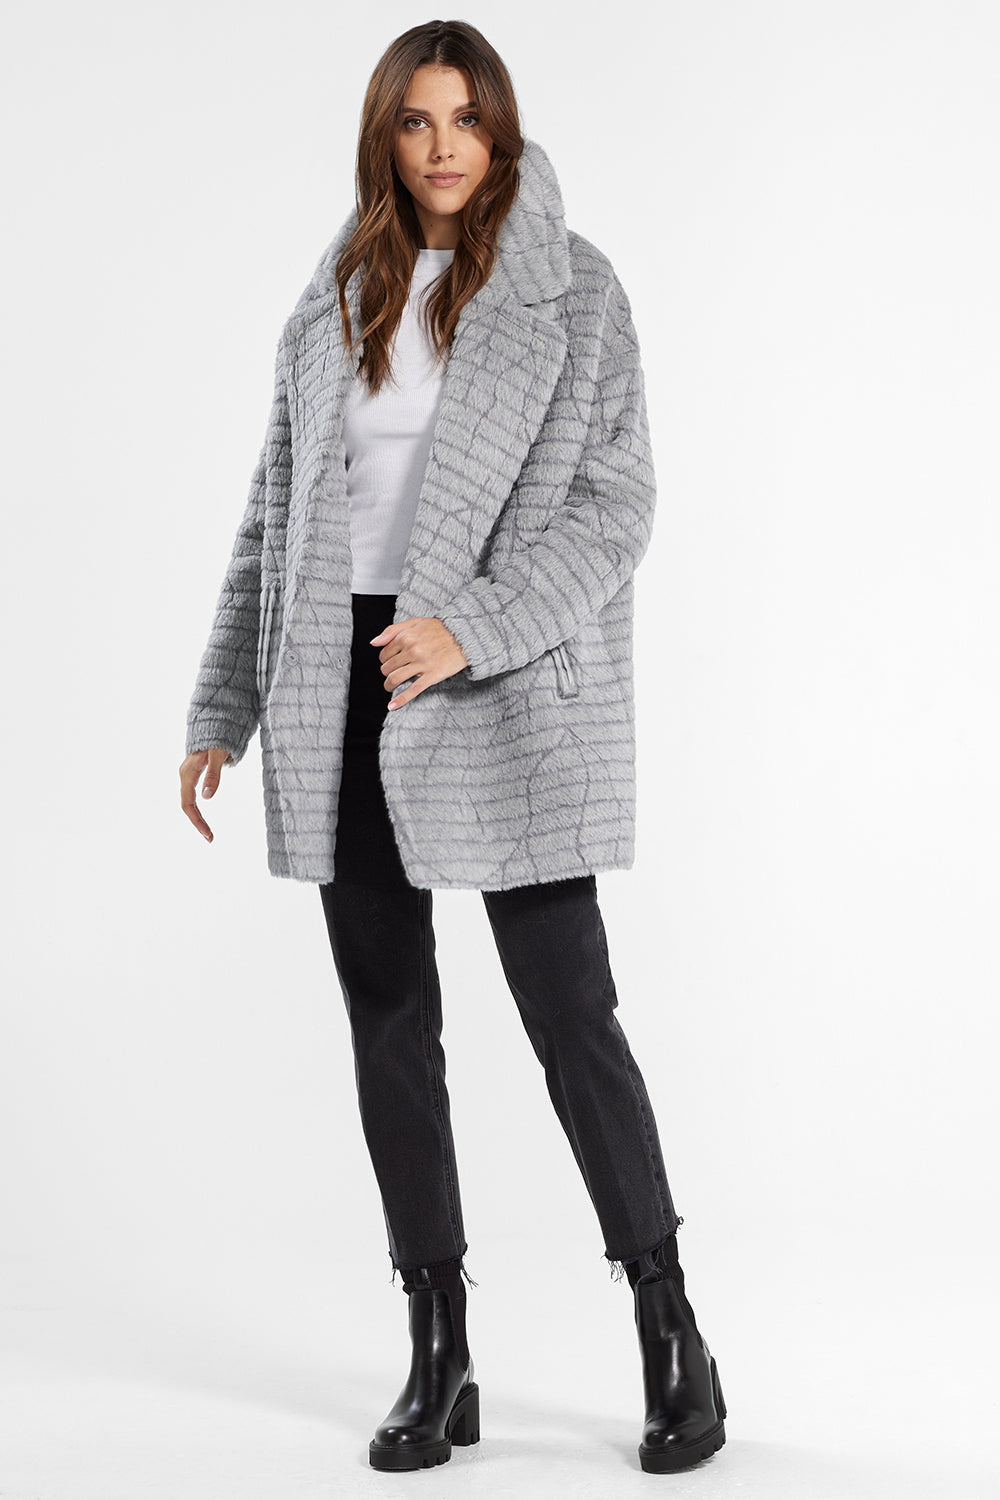 Sentaler Suri Alpaca Mid Length Oversized Notched Collar Coat featured in Suri Alpaca and available in Grey. Seen open.